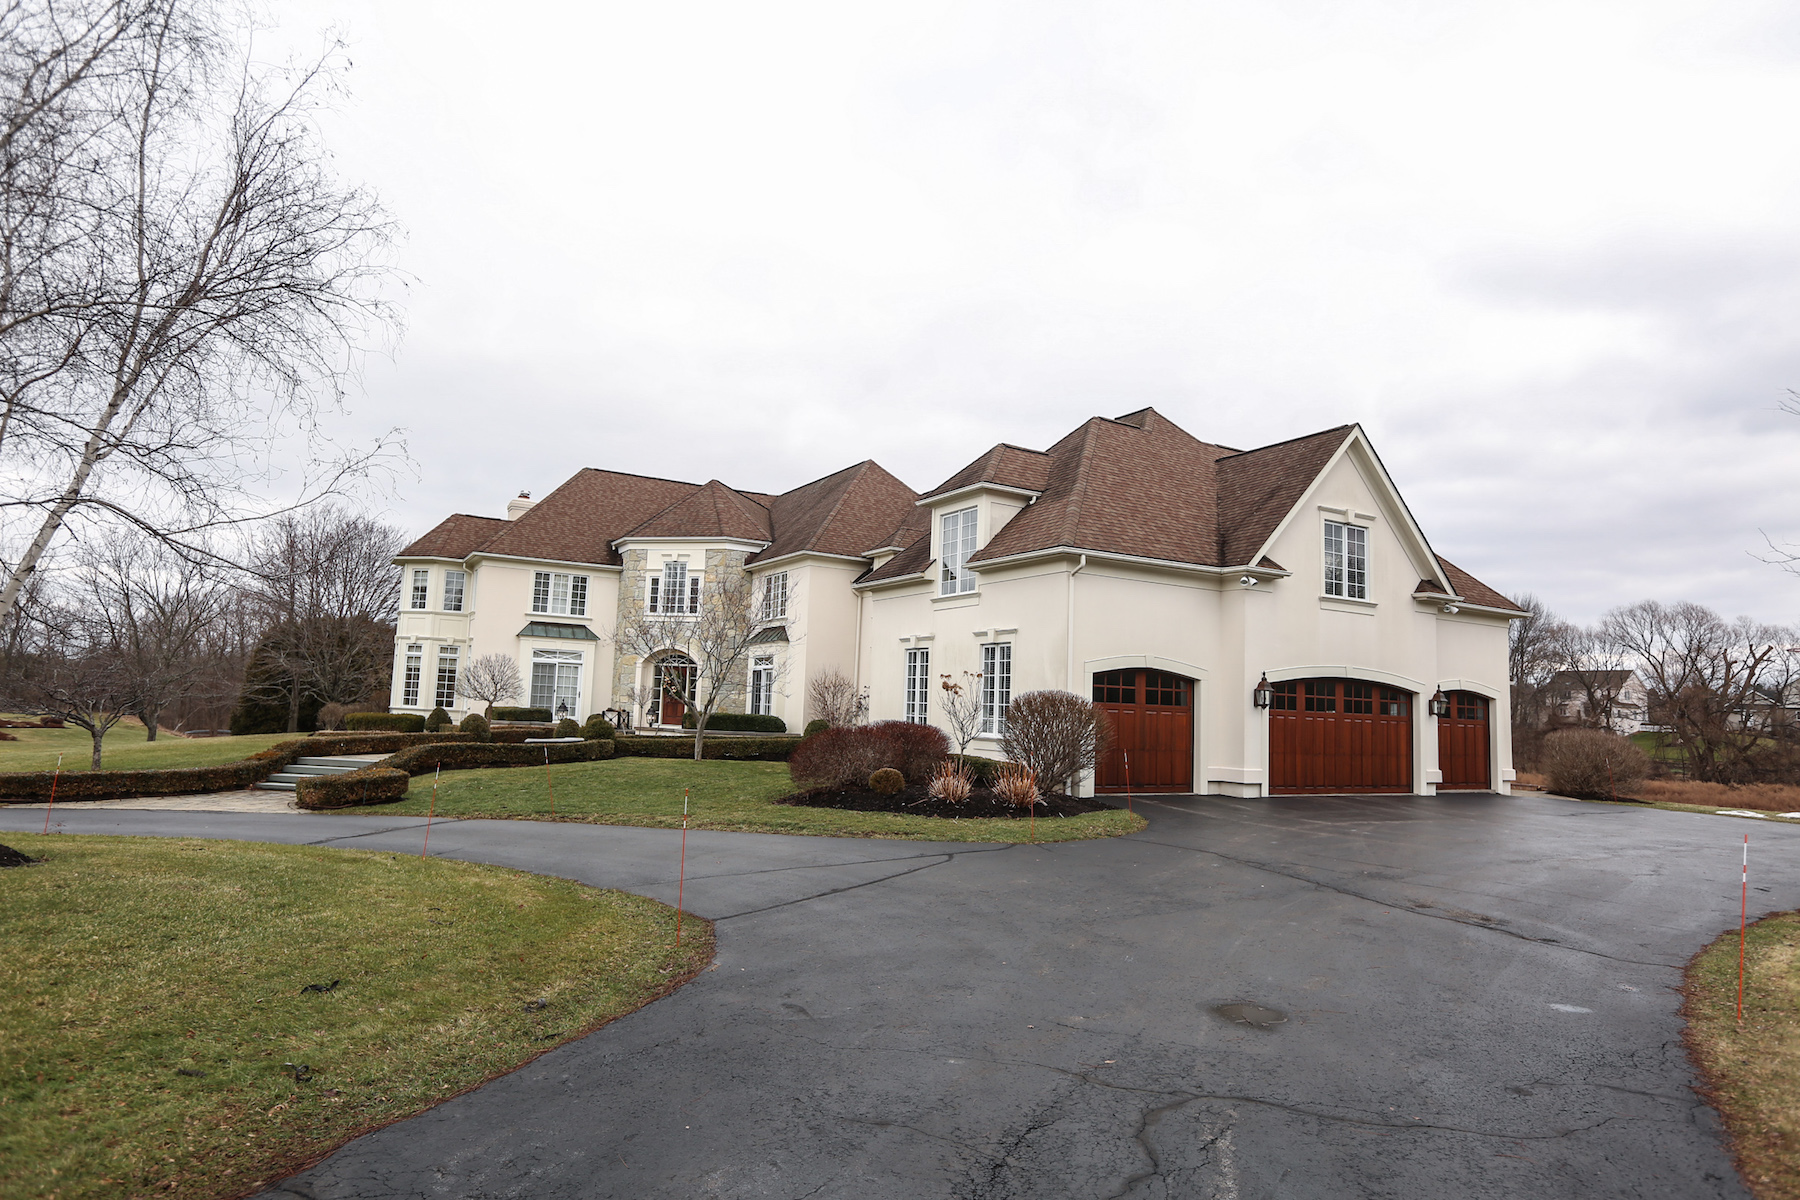 Additional photo for property listing at Kingsfield Drive Estate 8  Kingsfield Dr Pittsford, New York 14534 United States